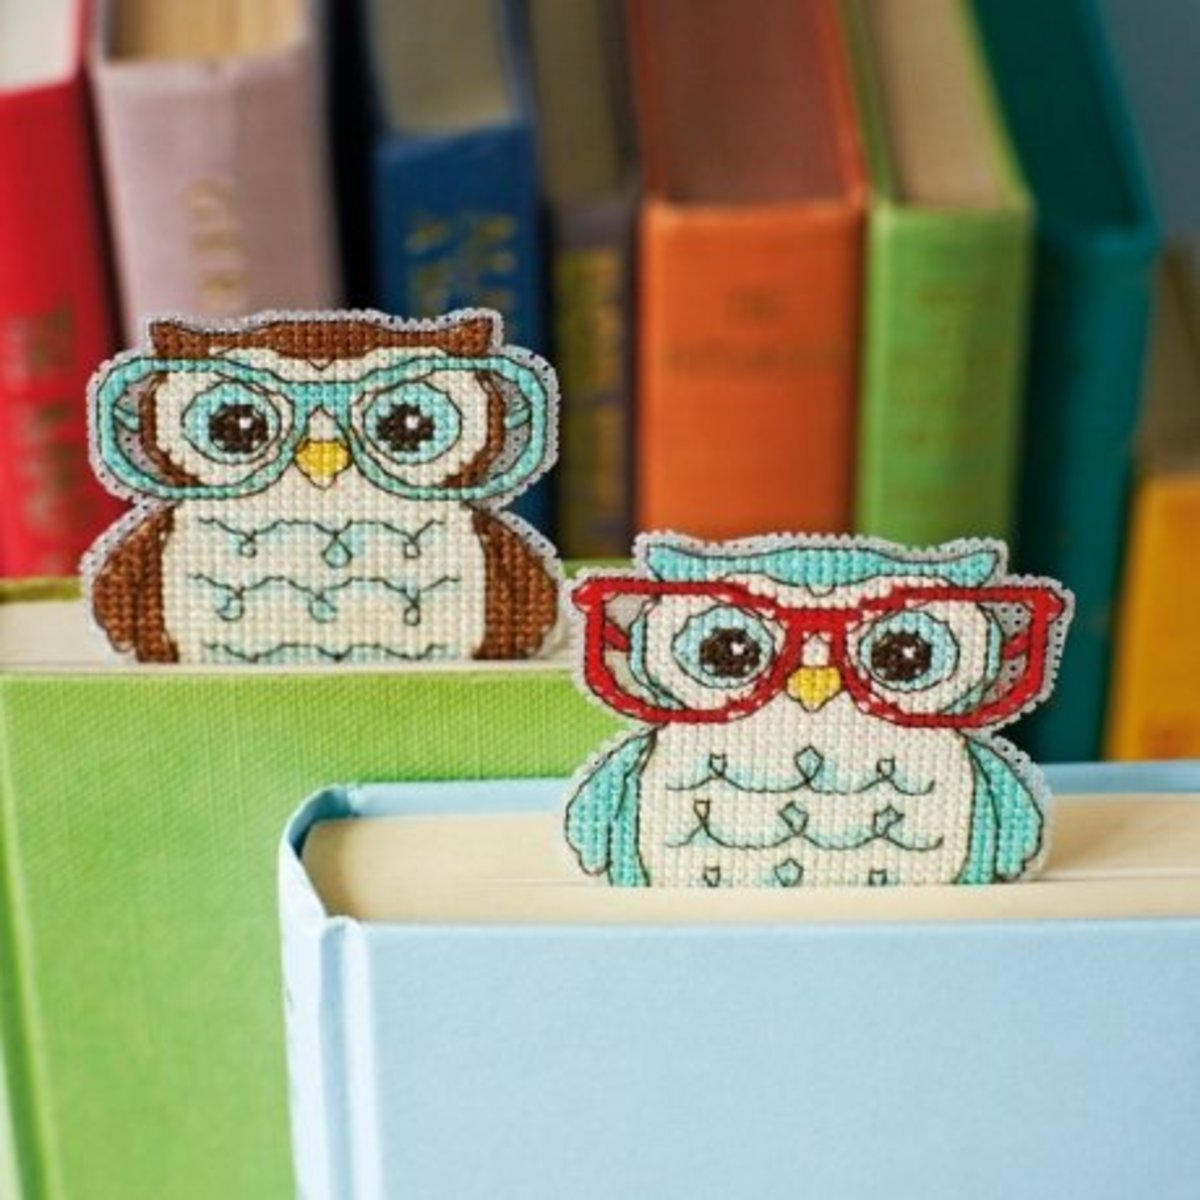 Stitched Bookmarks